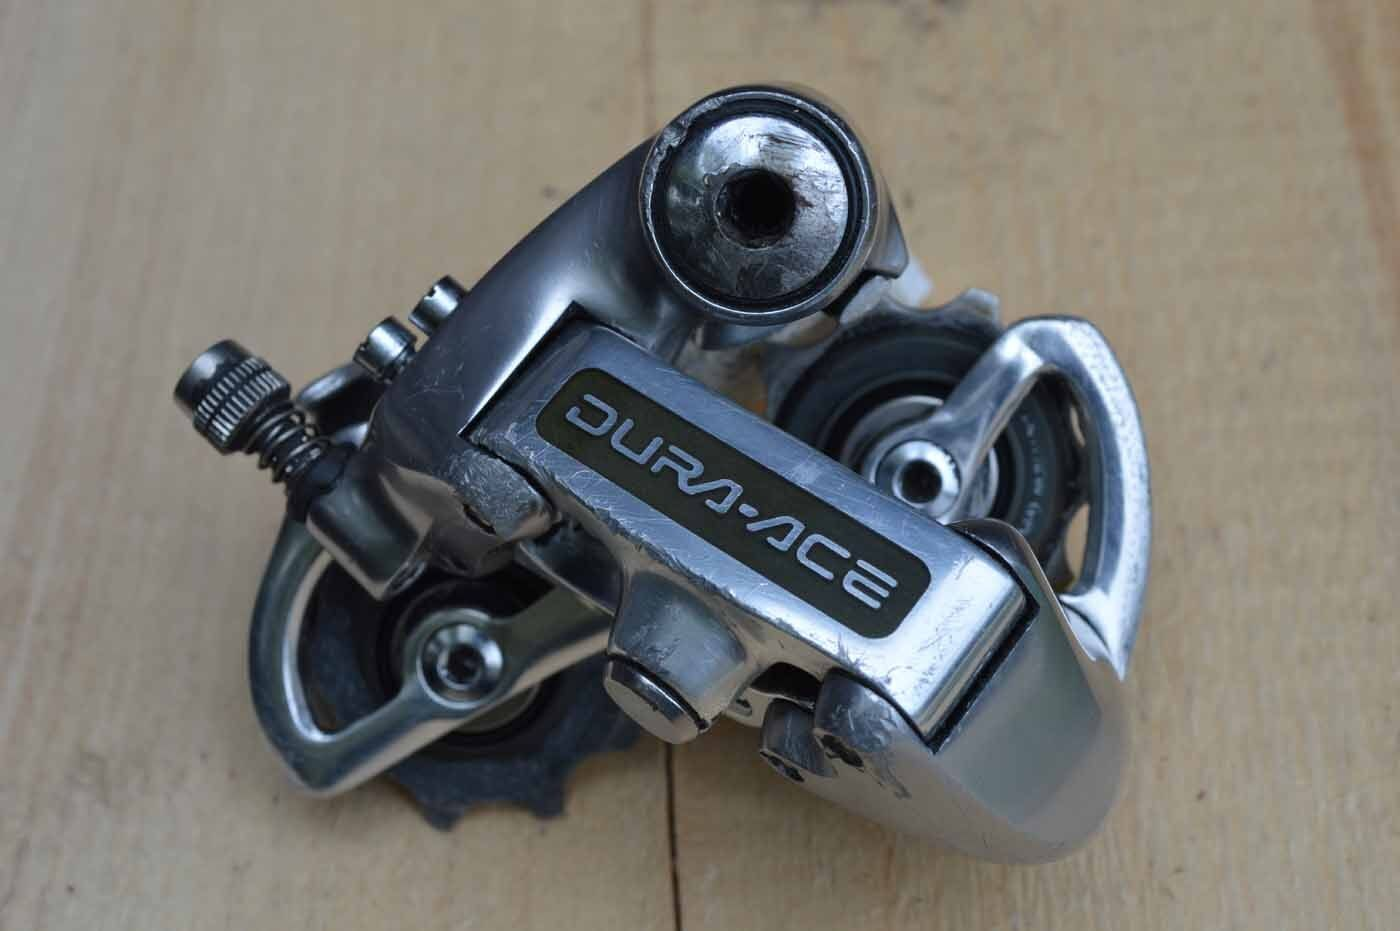 Rear derailleur retro road Shimano dura ace RD-  7402 short cage 49 mm 8 speed  promotions